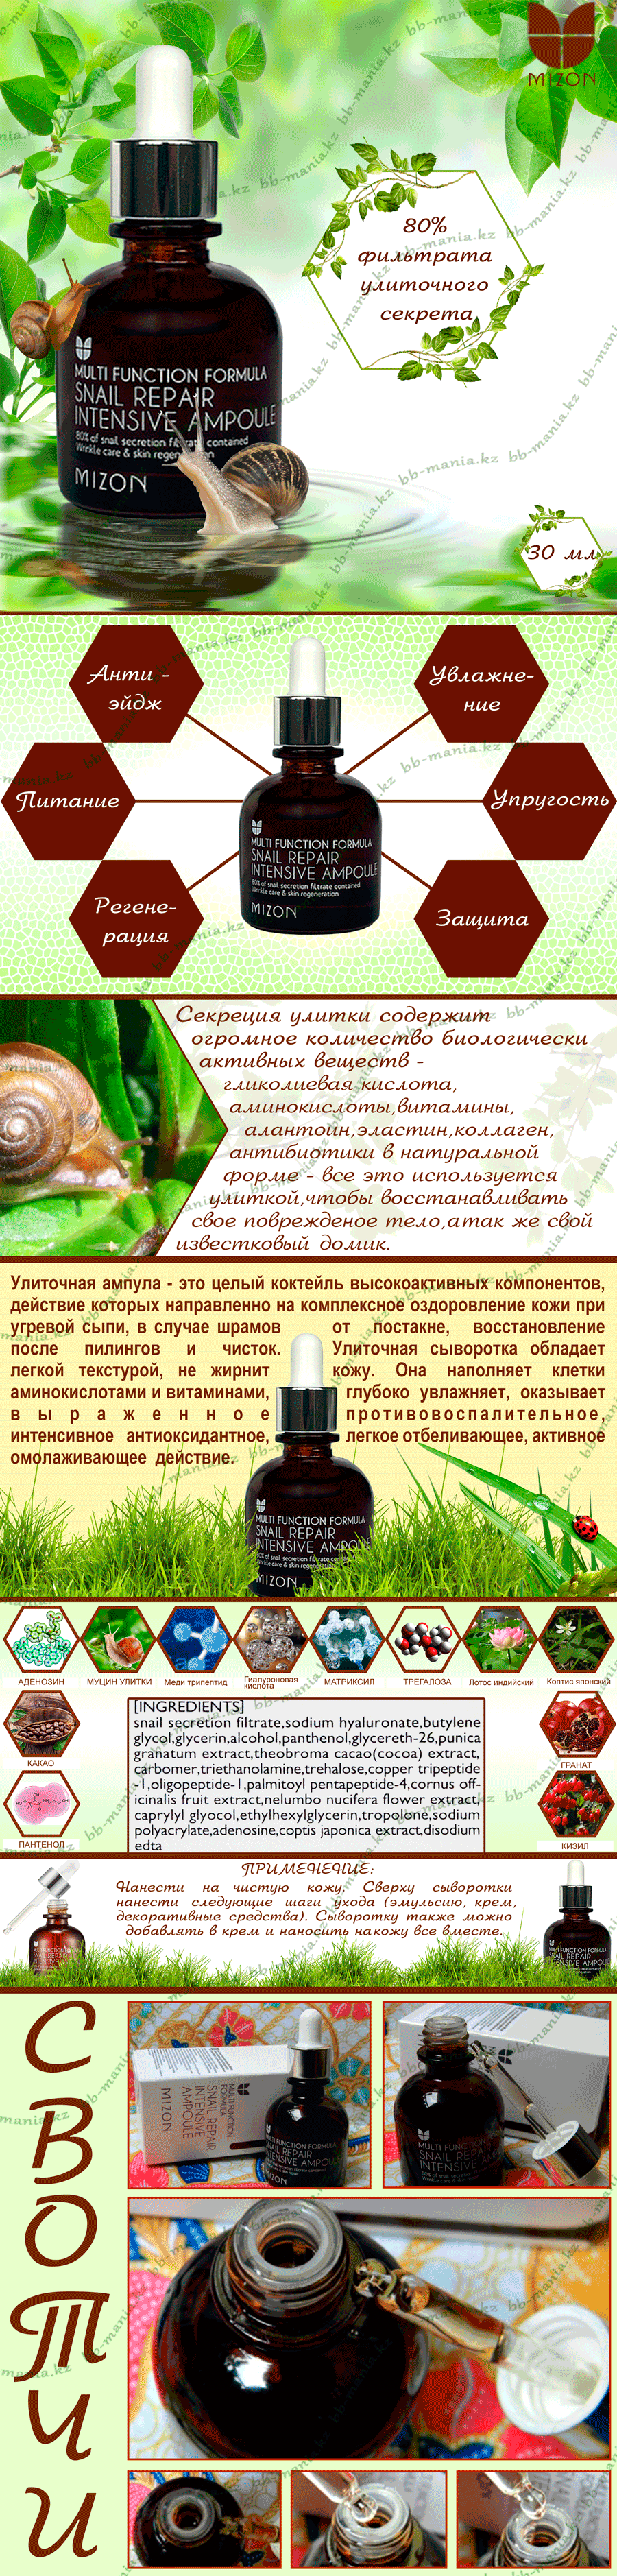 Snail-Repair-Intensive-Ampoule-[Mizon]-min